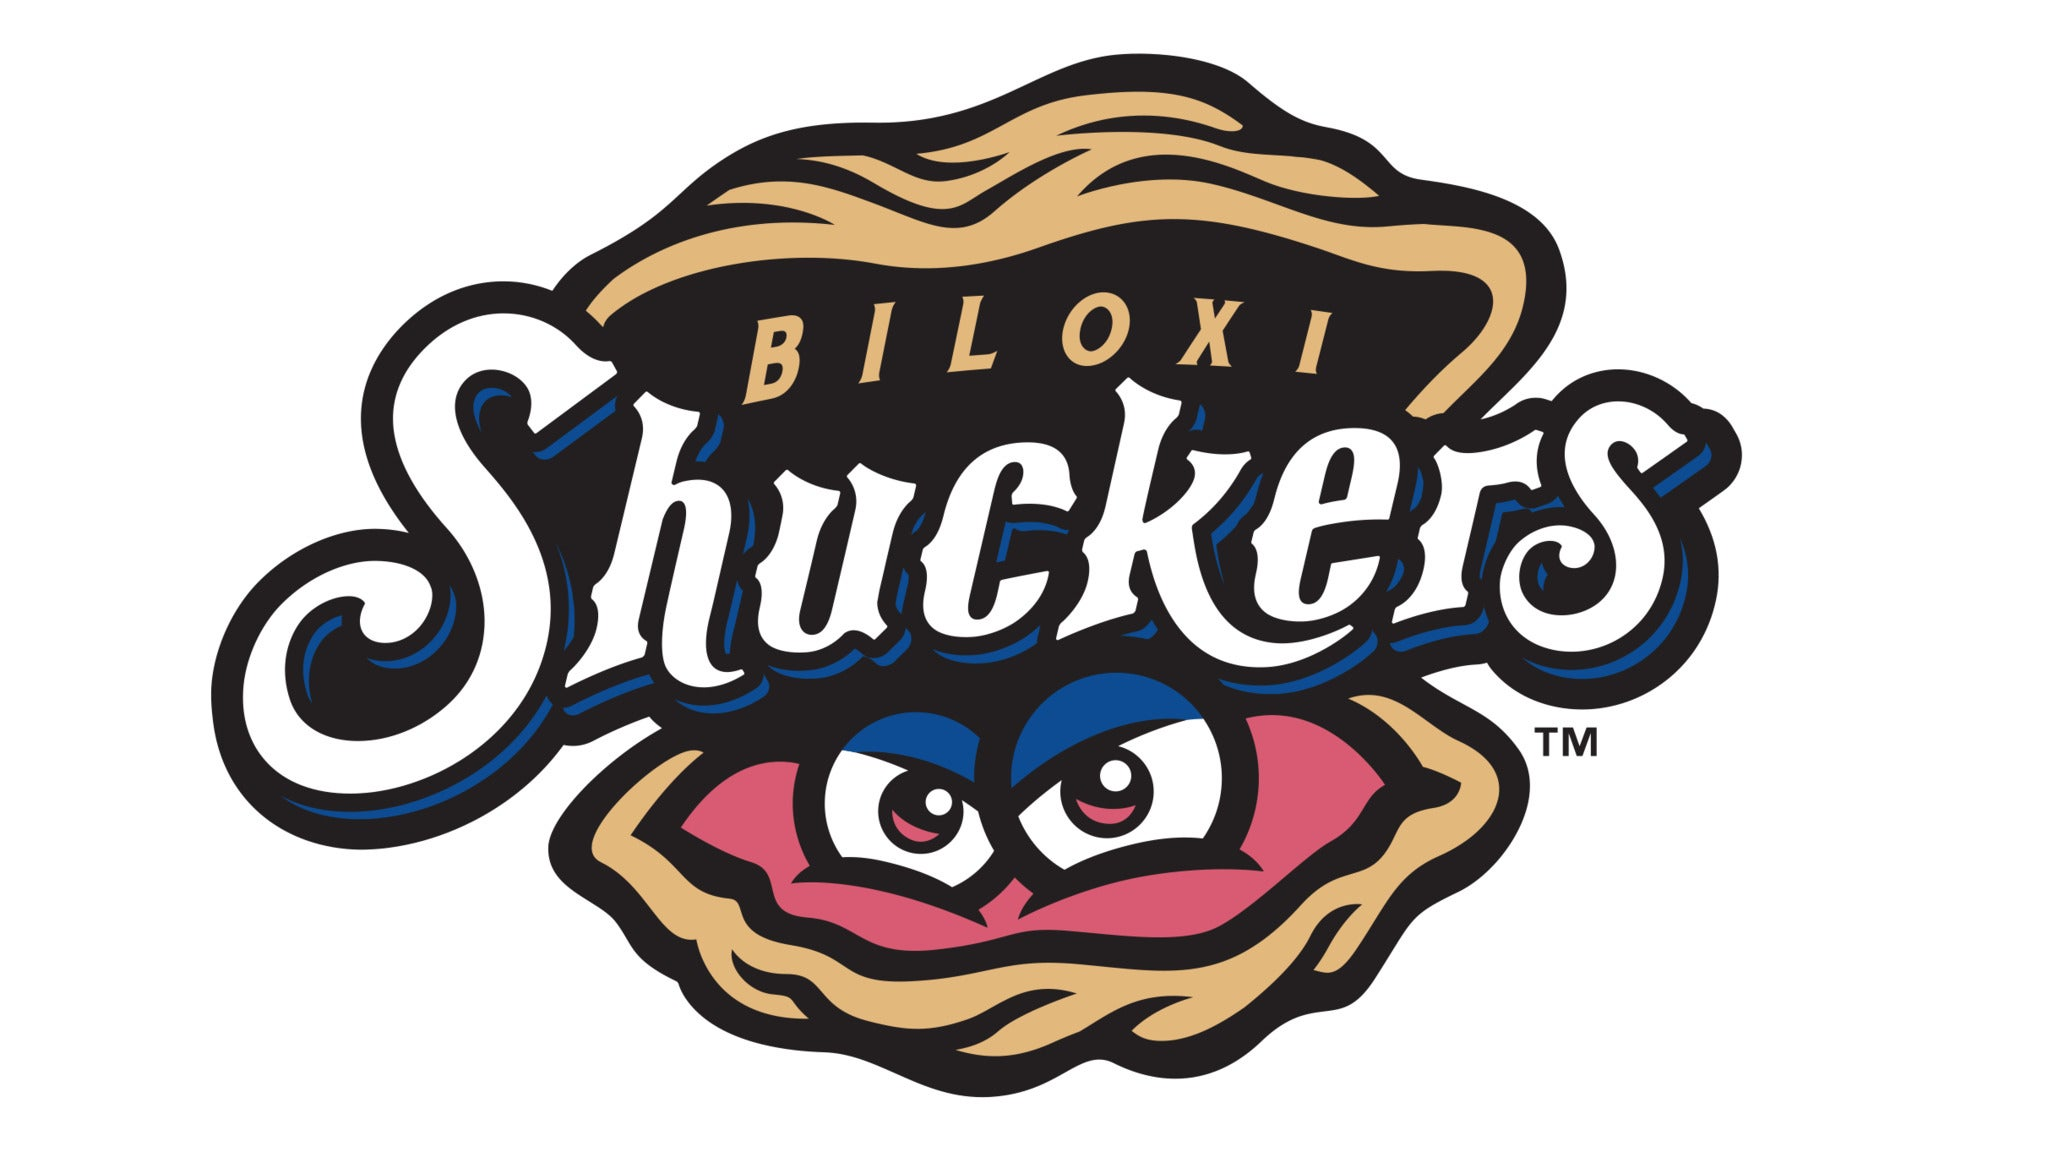 Biloxi Shuckers Playoffs - Round 1 Game 1 at MGM Park